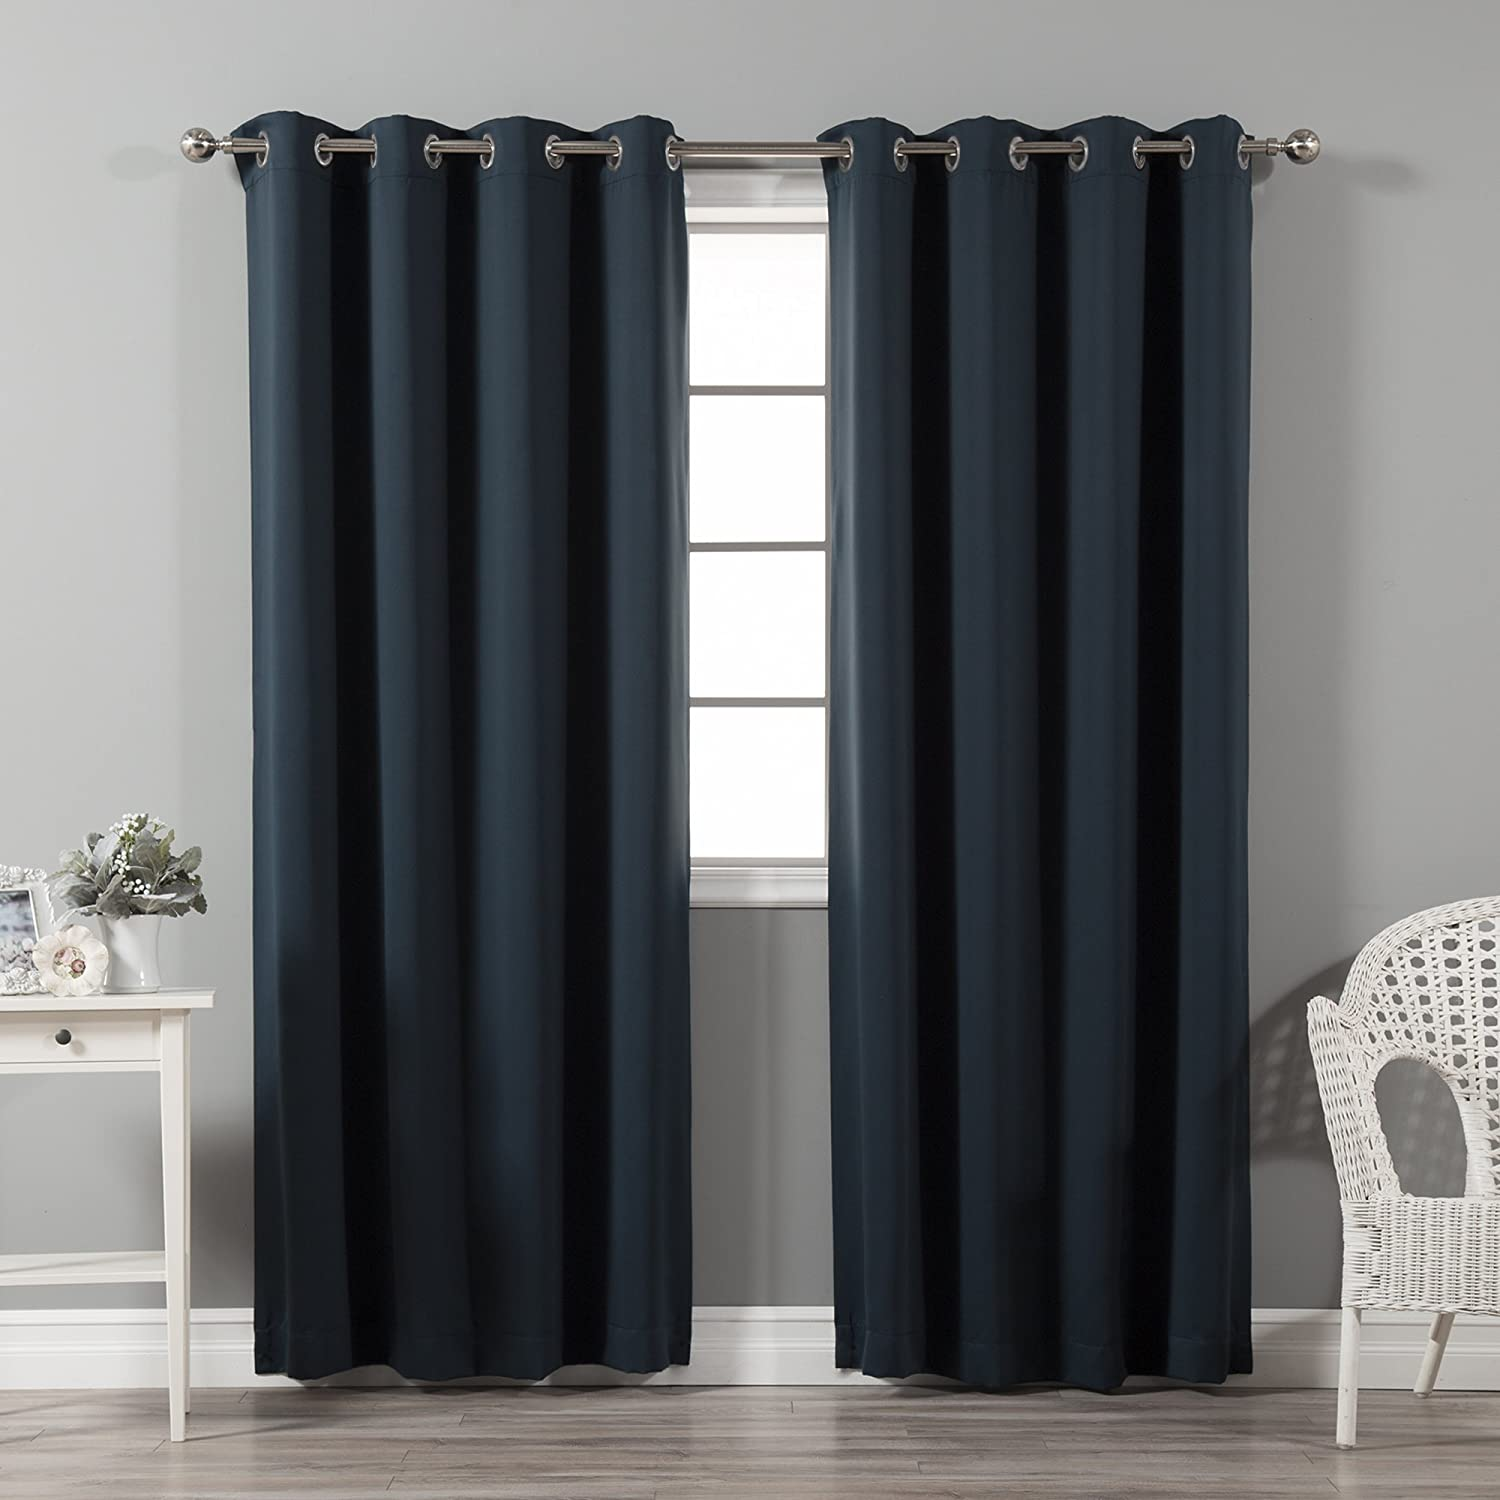 Best Home Fashion Thermal Insulated Blackout Curtains - Stainless steel nickel Grommet Top - Navy